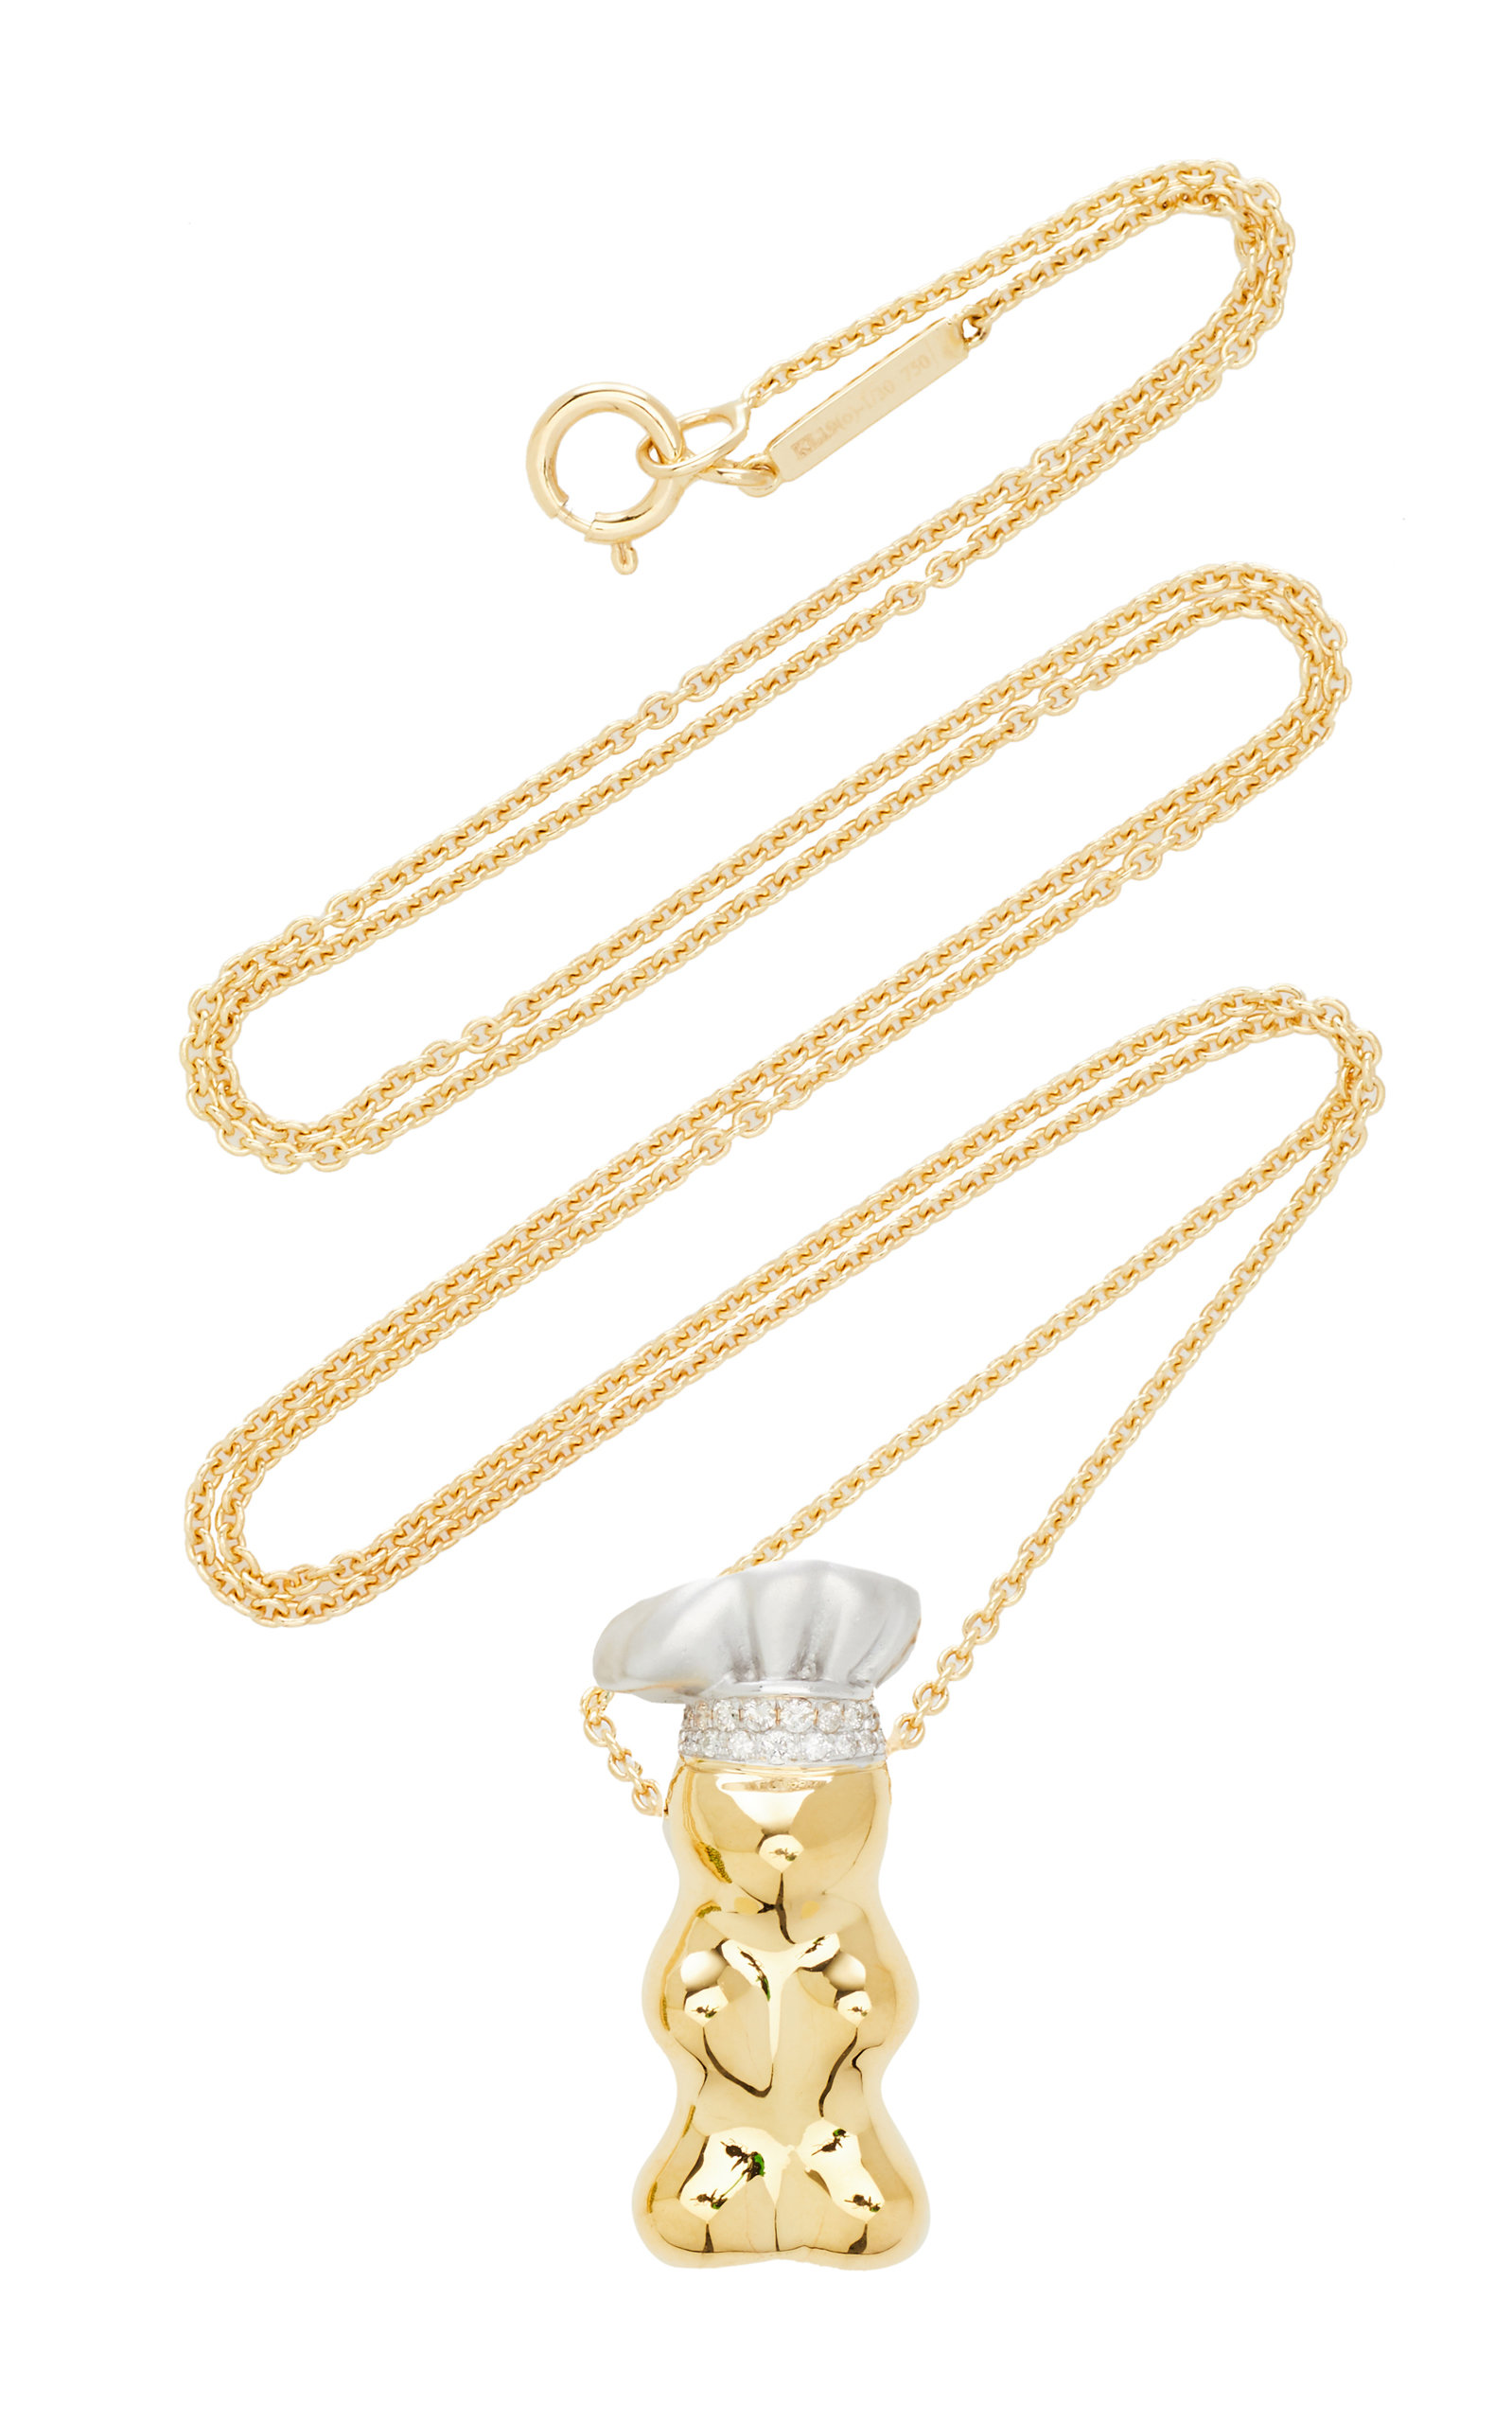 Women's Gummy Bear Chef Hat 18K Yellow-Gold and Diamond Necklace